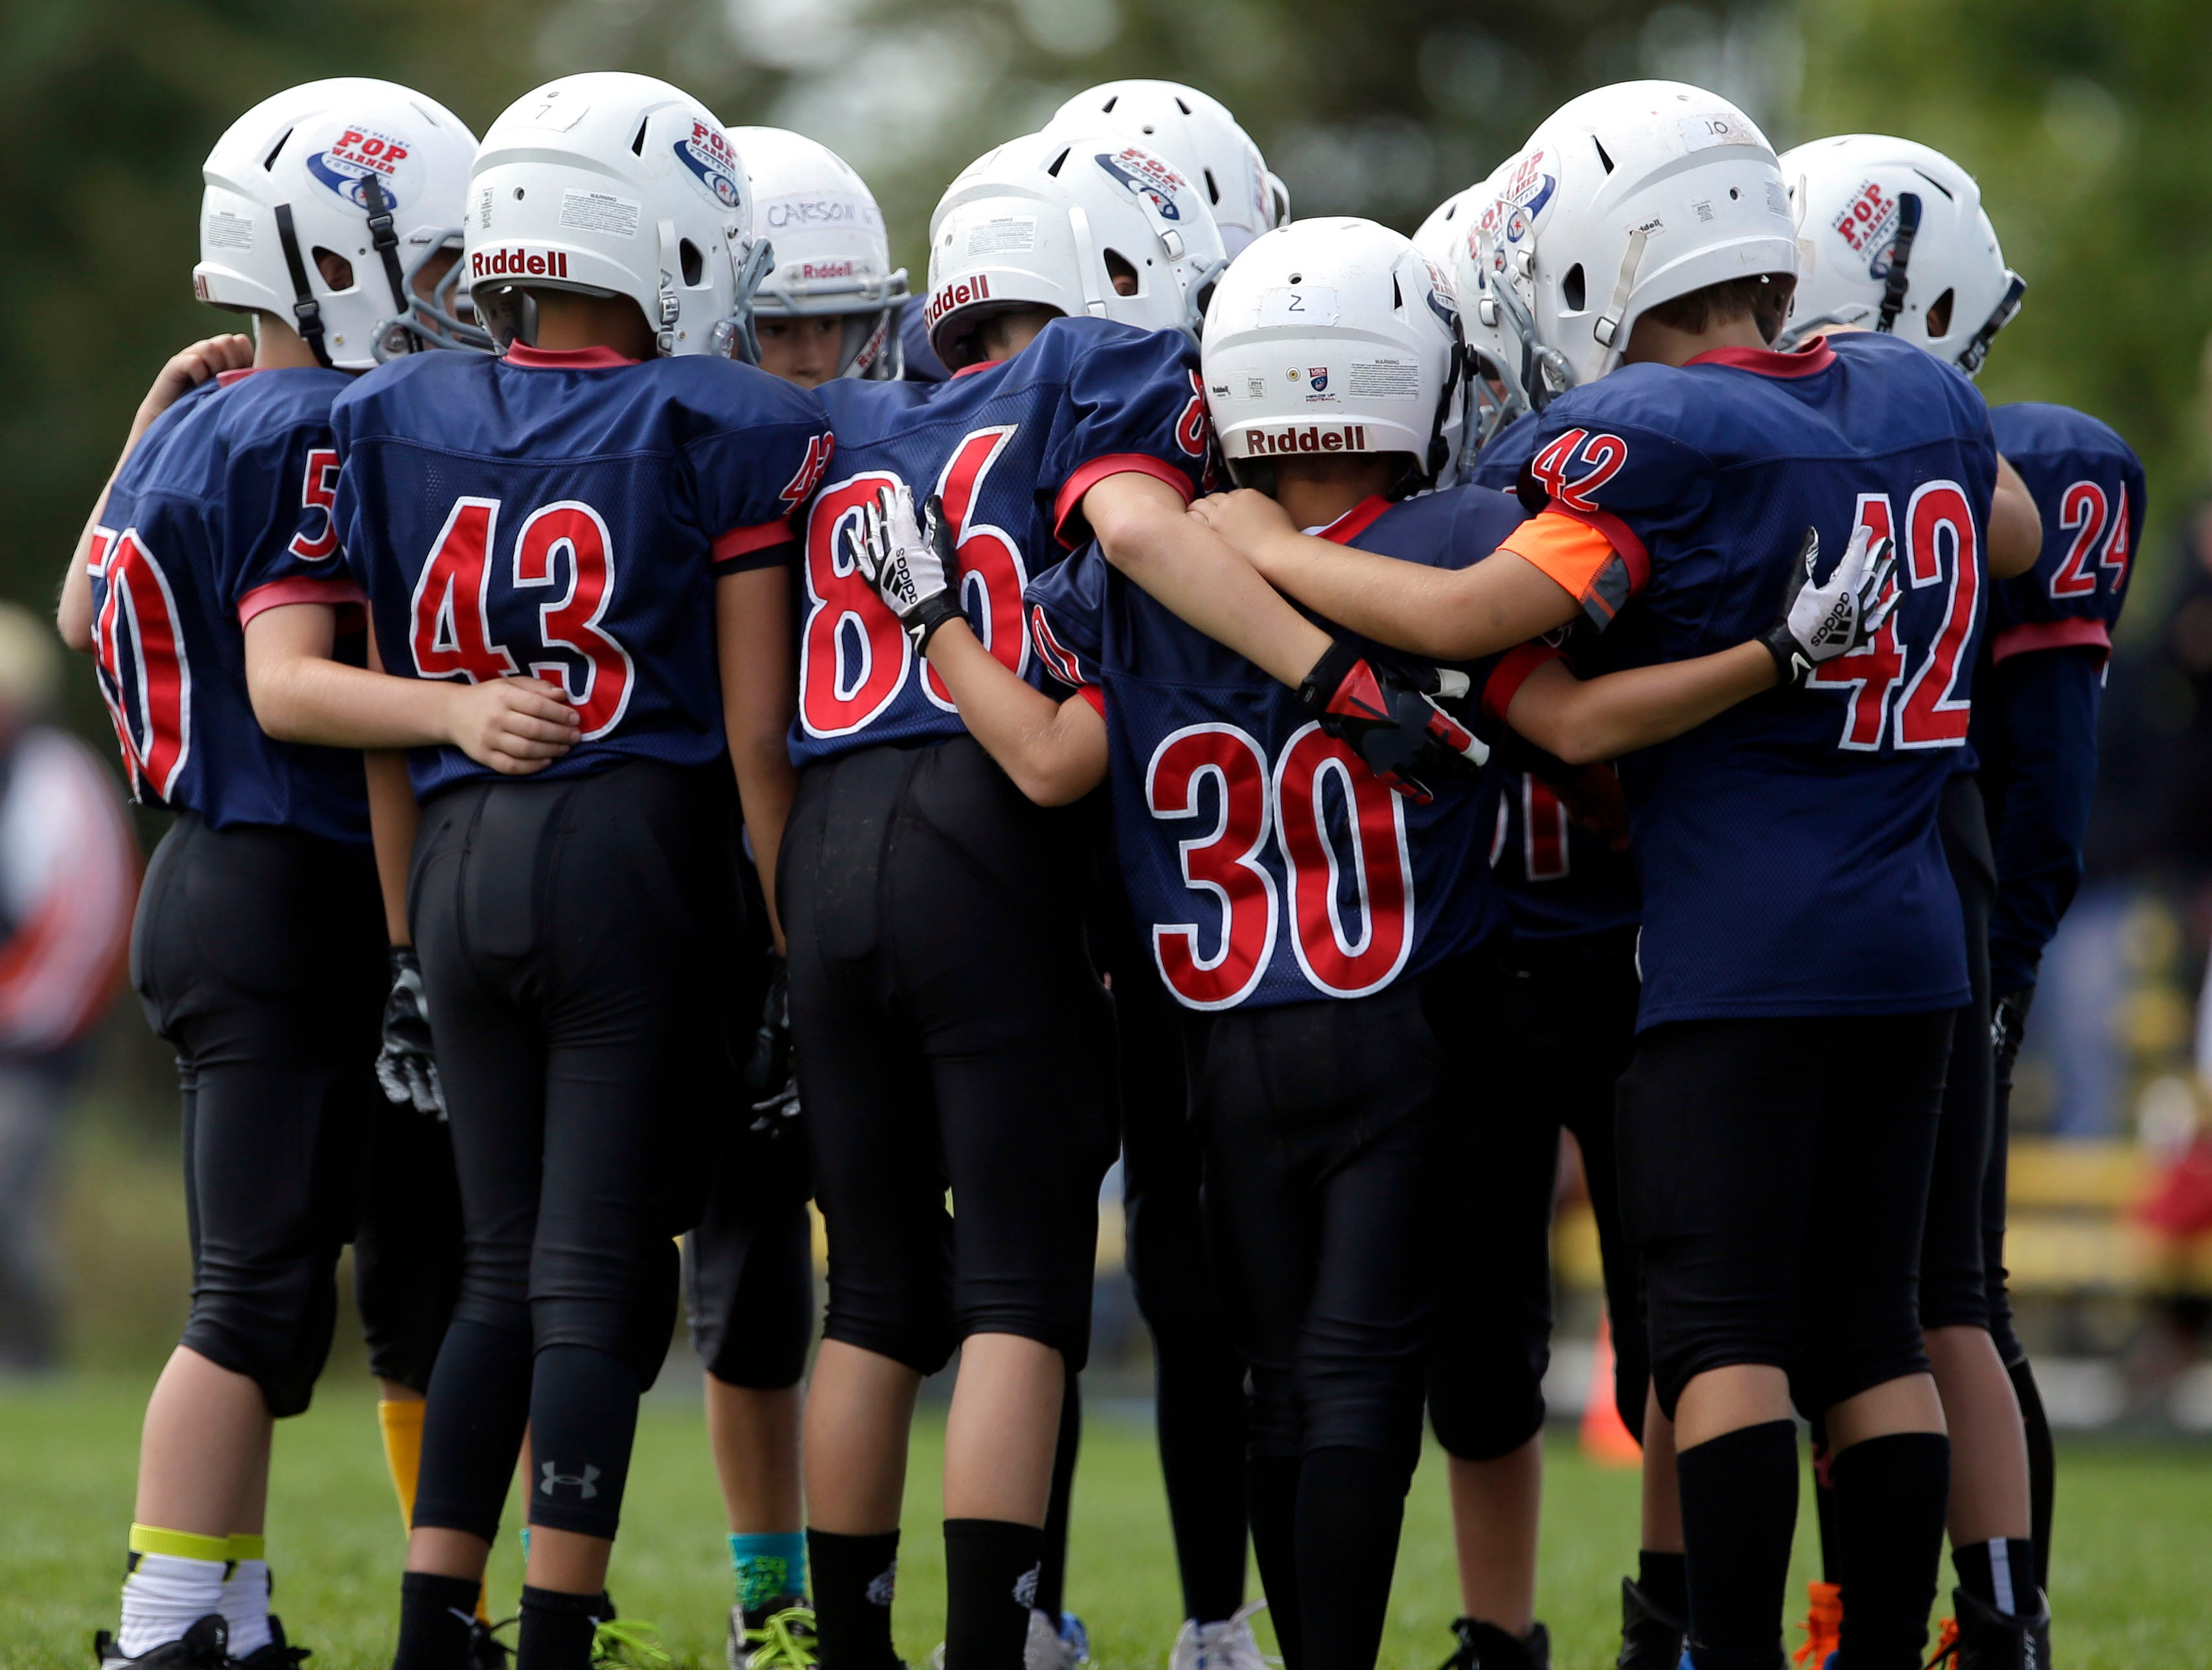 The Patriots huddle during a game against the Rockets as Fox Valley Pop Warner Football opens the season Saturday, September 8, 2018, at Plamann Park in Grand Chute, Wis.Ron Page/USA TODAY NETWORK-Wisconsin